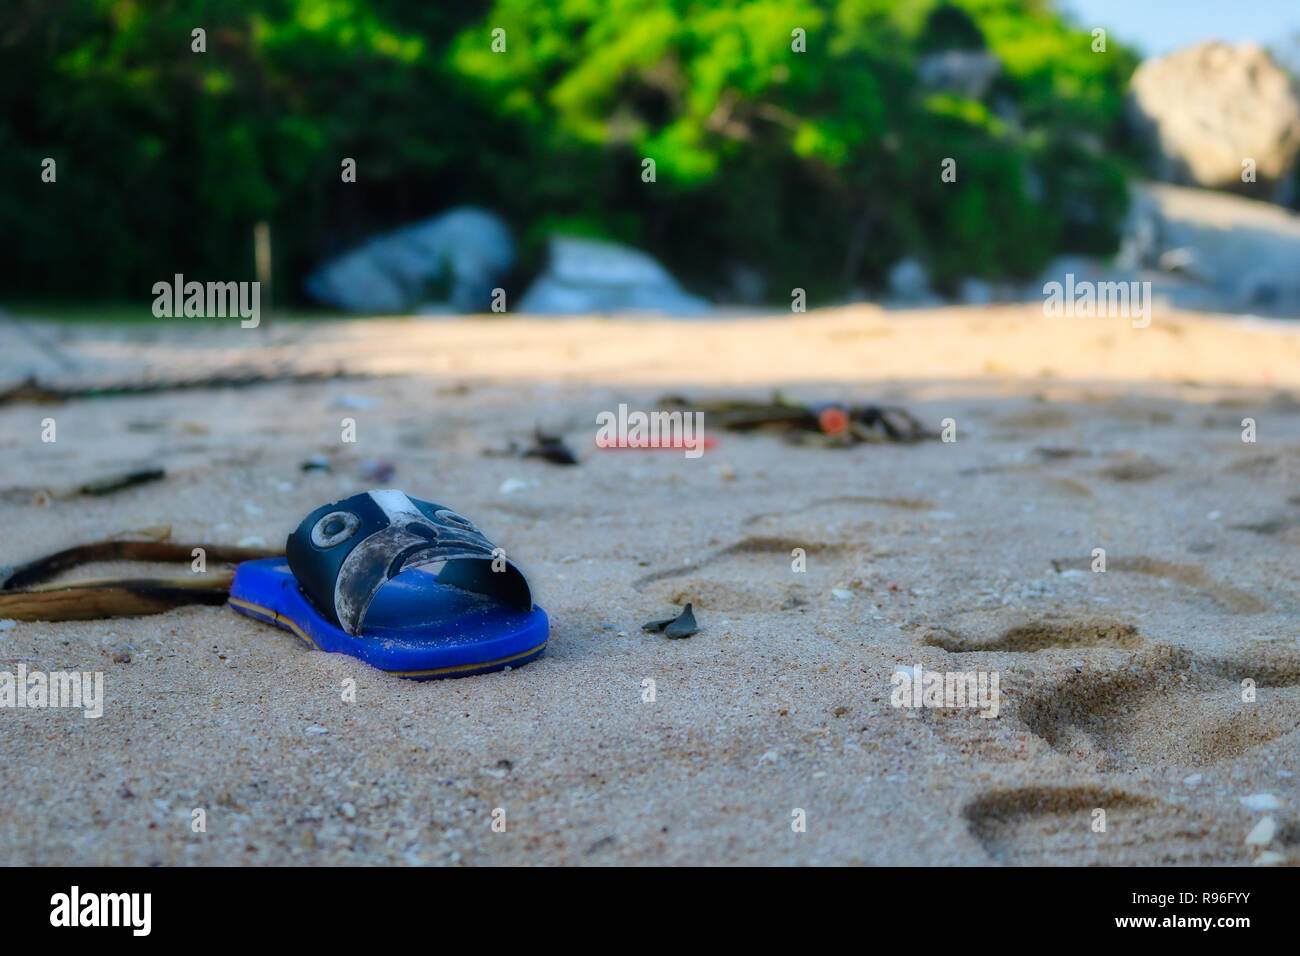 This shocking photo shows the totally plastic littered beach of Hua Hin in Thailand. These are the original beaches of Thailand land of garbage. - Stock Image